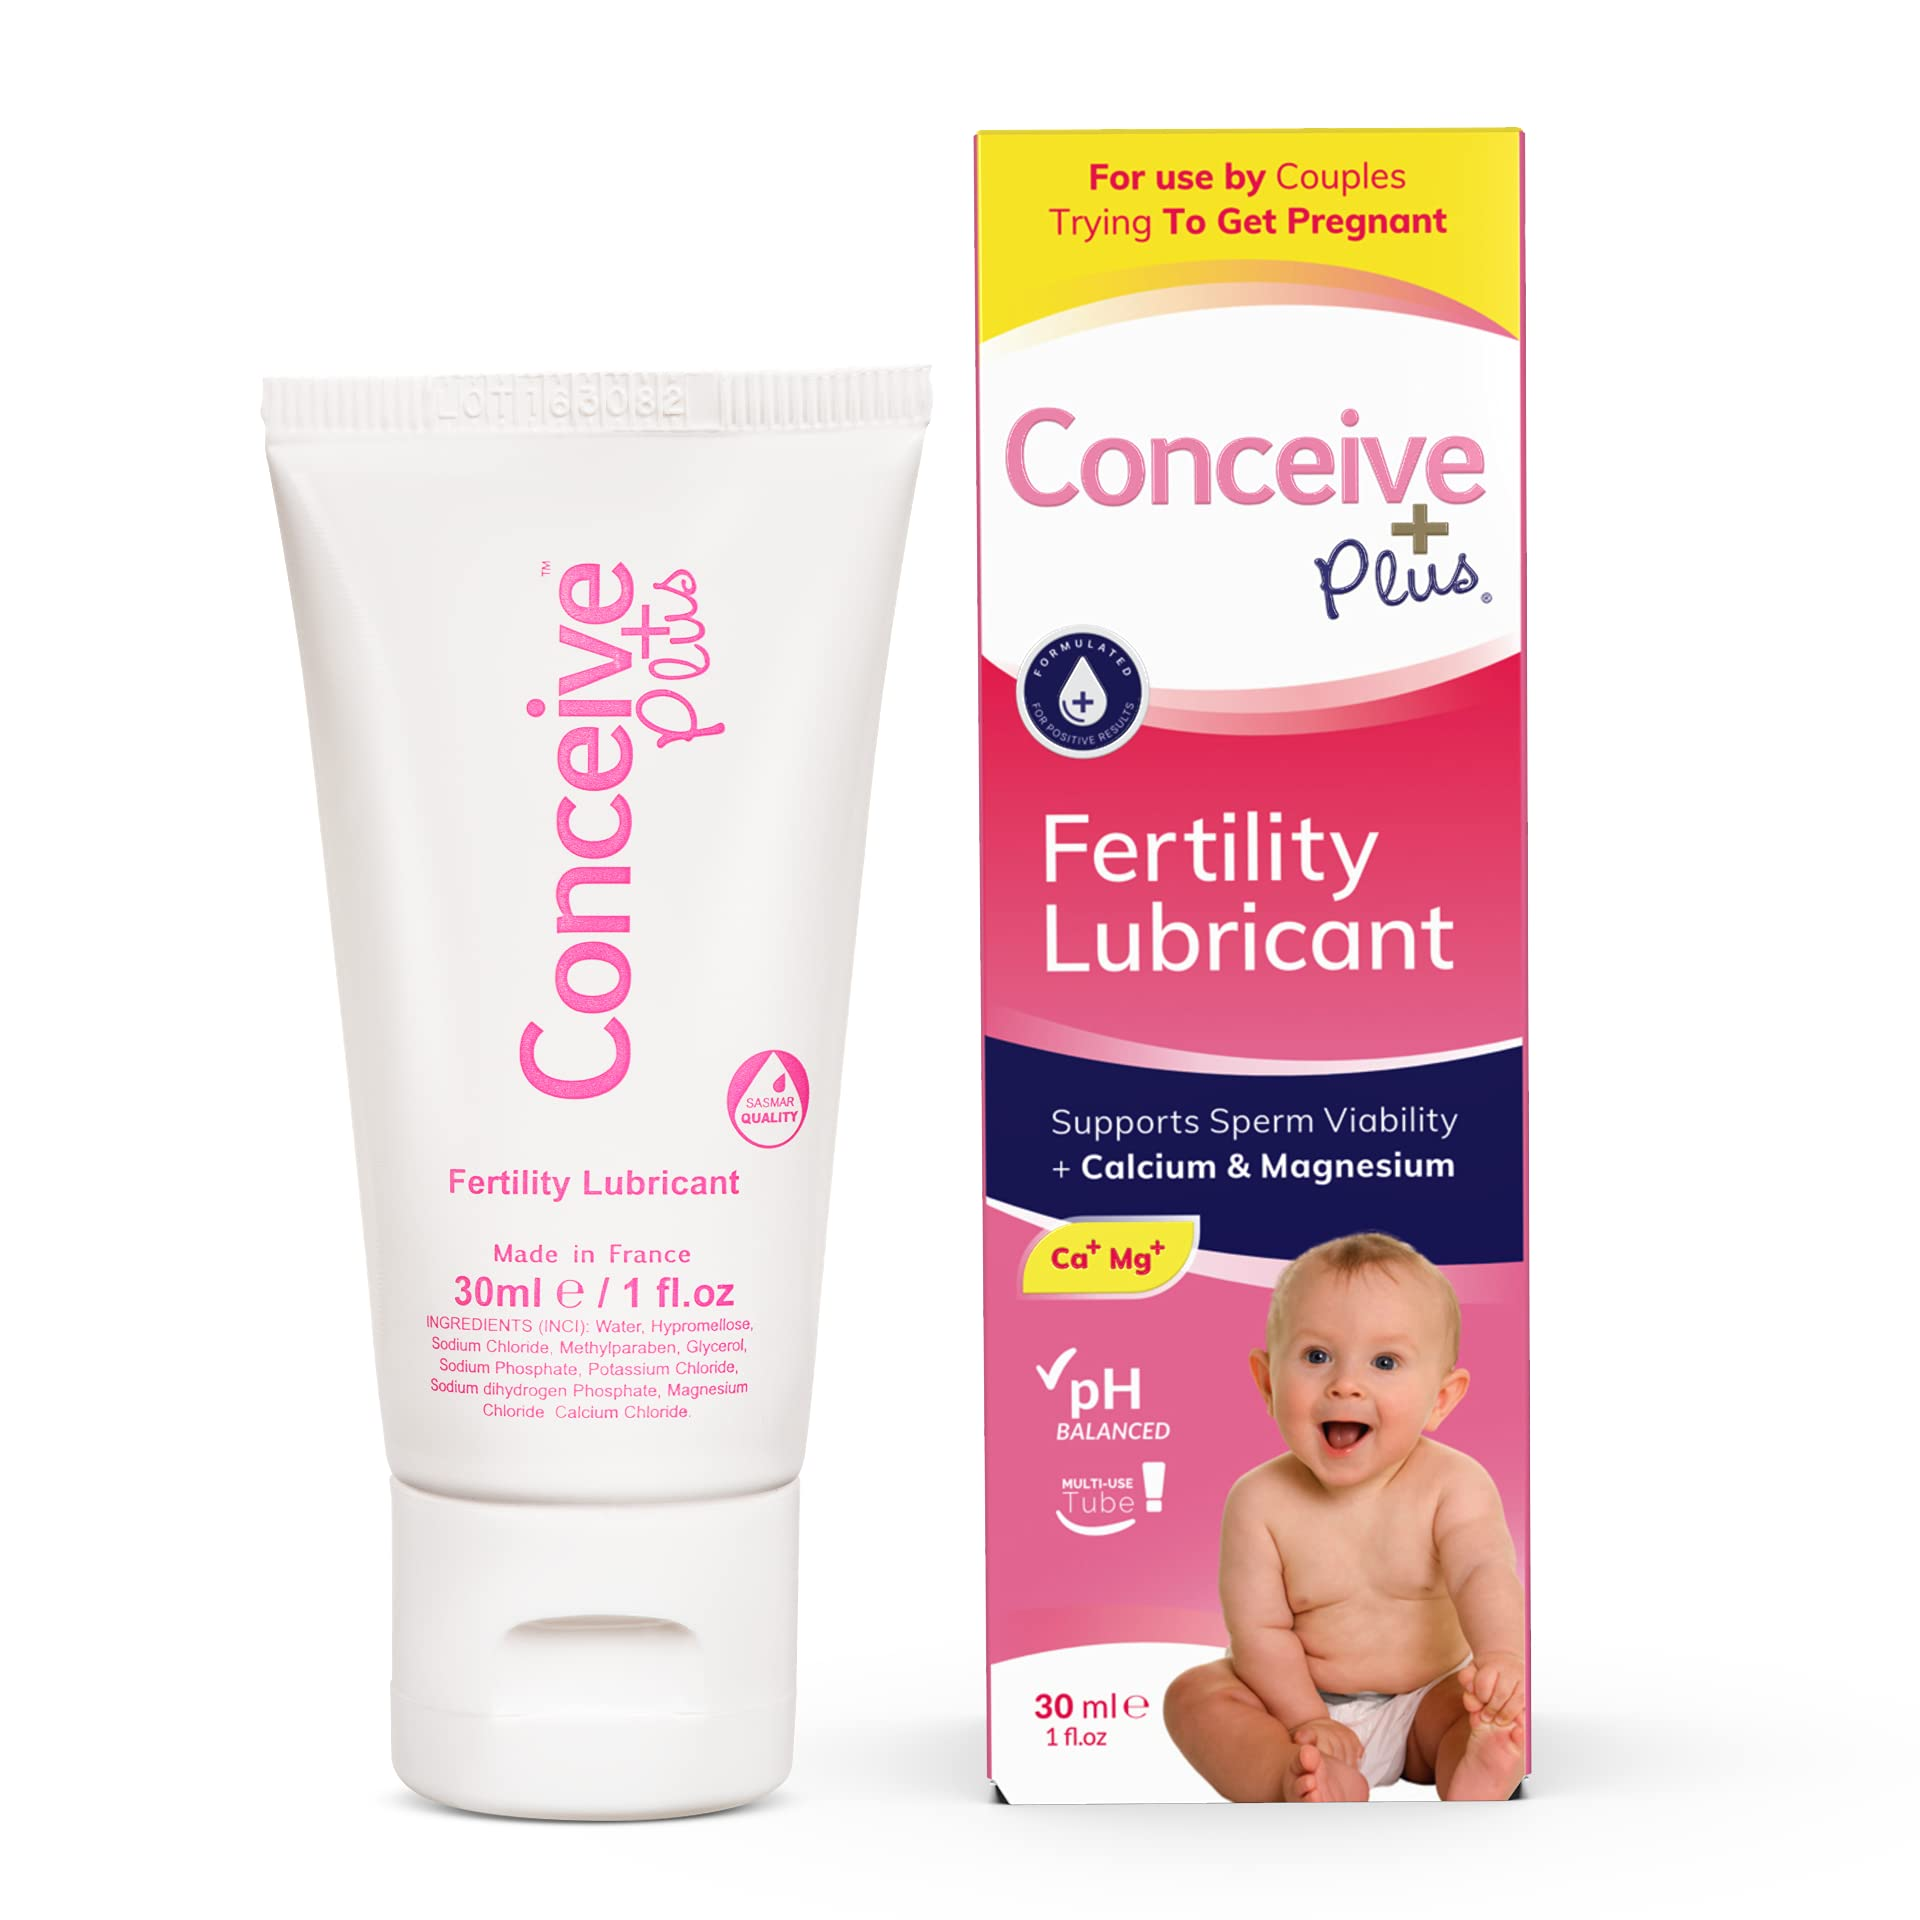 CONCEIVE PLUS Travel Size Fertility Lubricant for Women - Calcium + Mg - Use When Trying to Conceive - Vaginal Moisturizer - 1 Ounce Multi-Use Tube